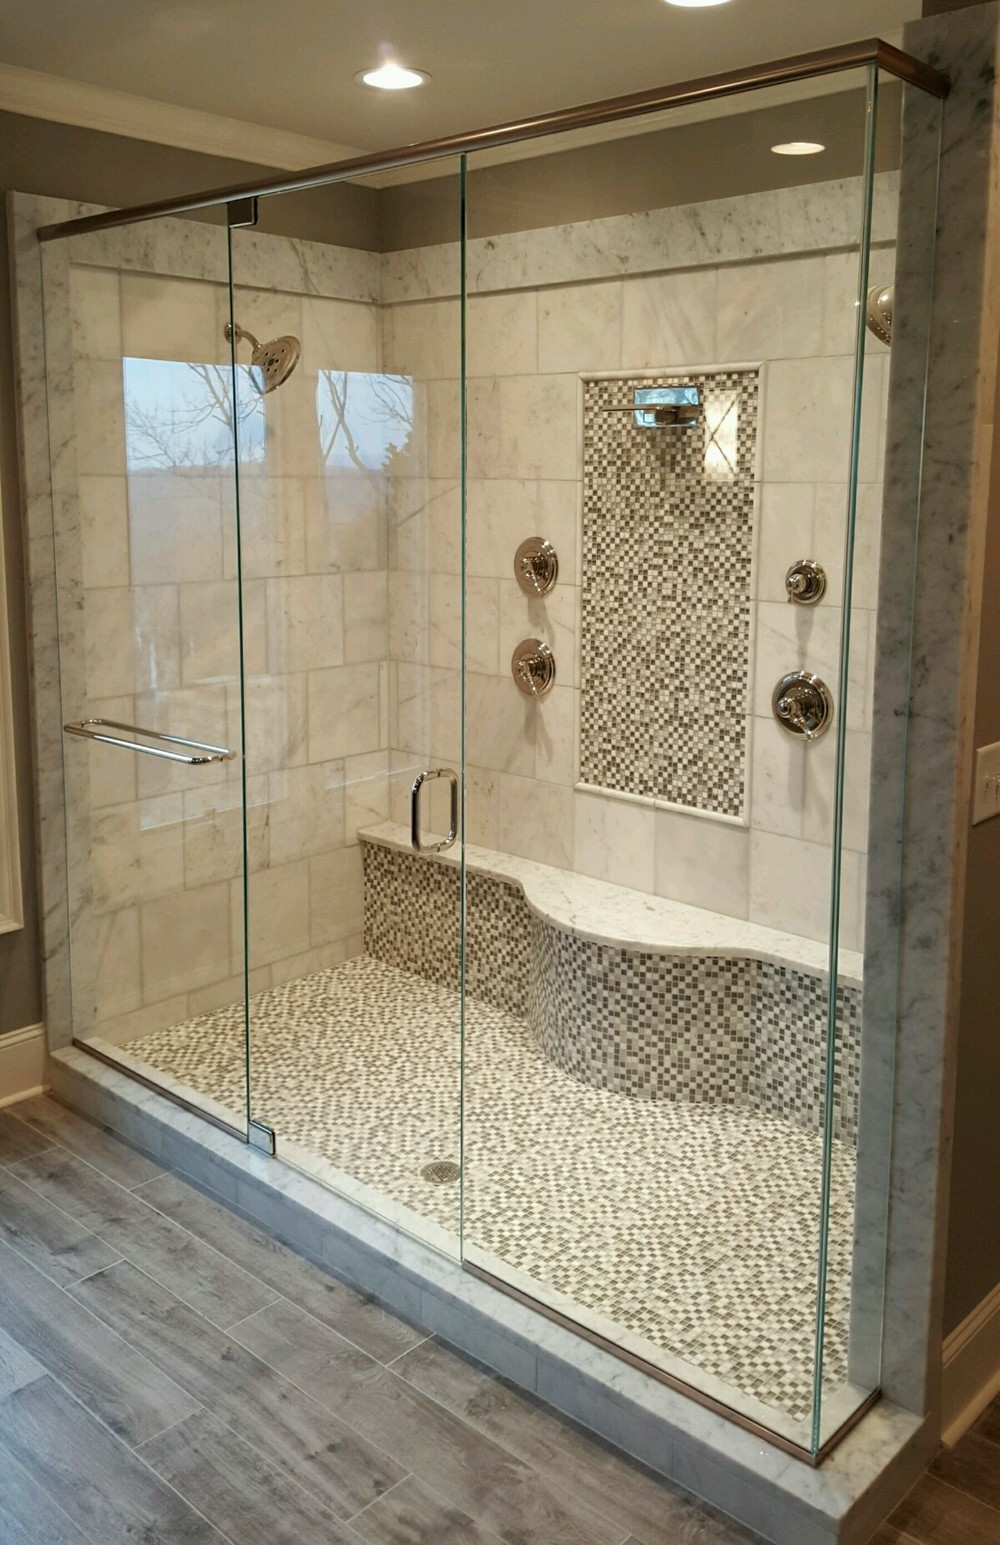 Shower Doors And Mirrors Closet Shelving Solutions